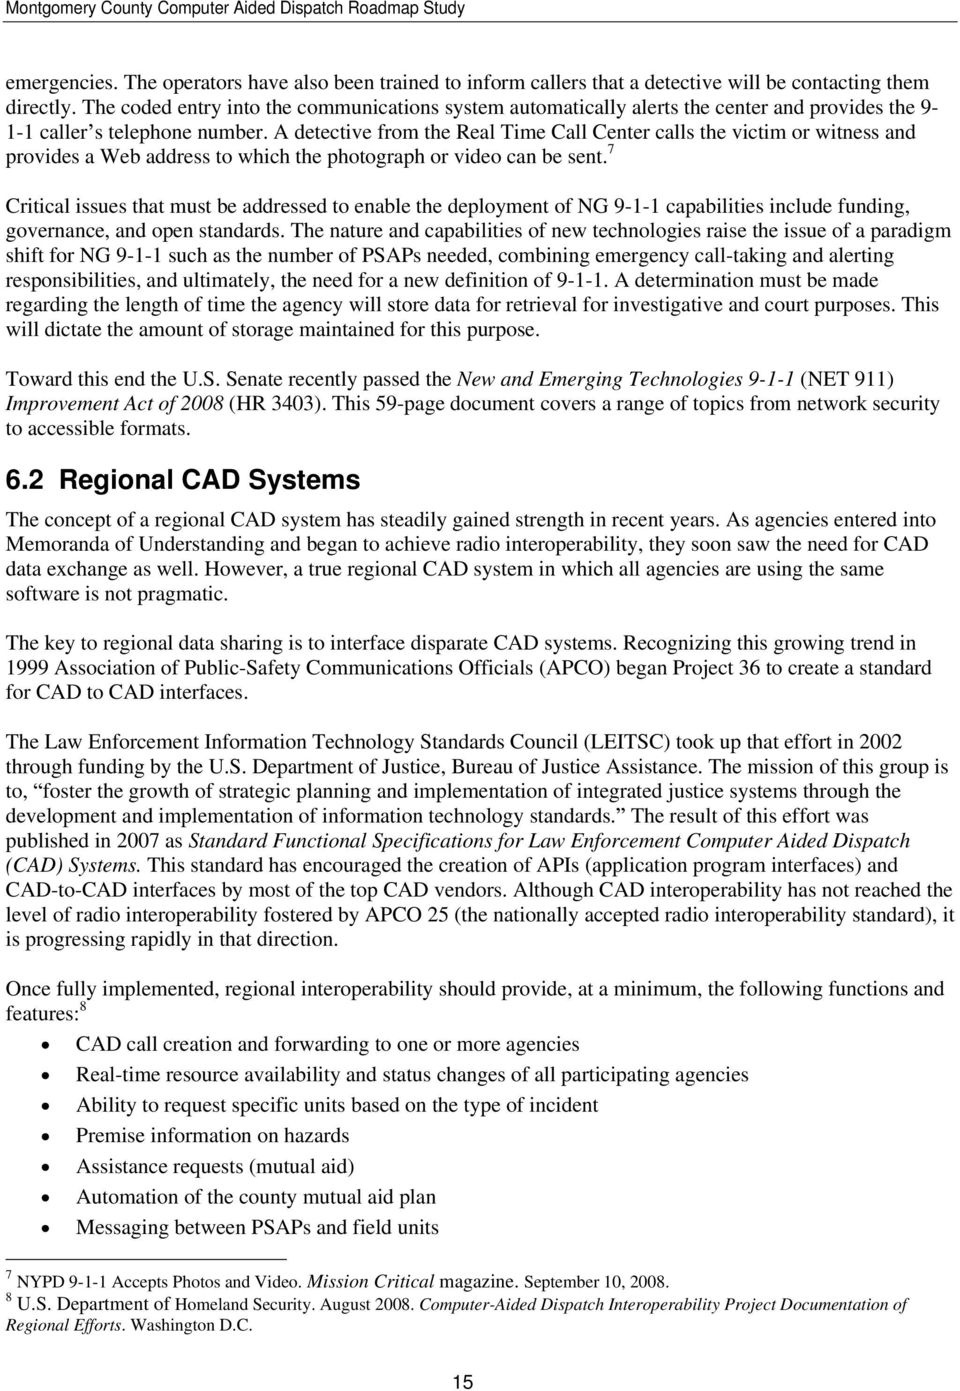 Montgomery County Computer Aided Dispatch Roadmap Study - PDF